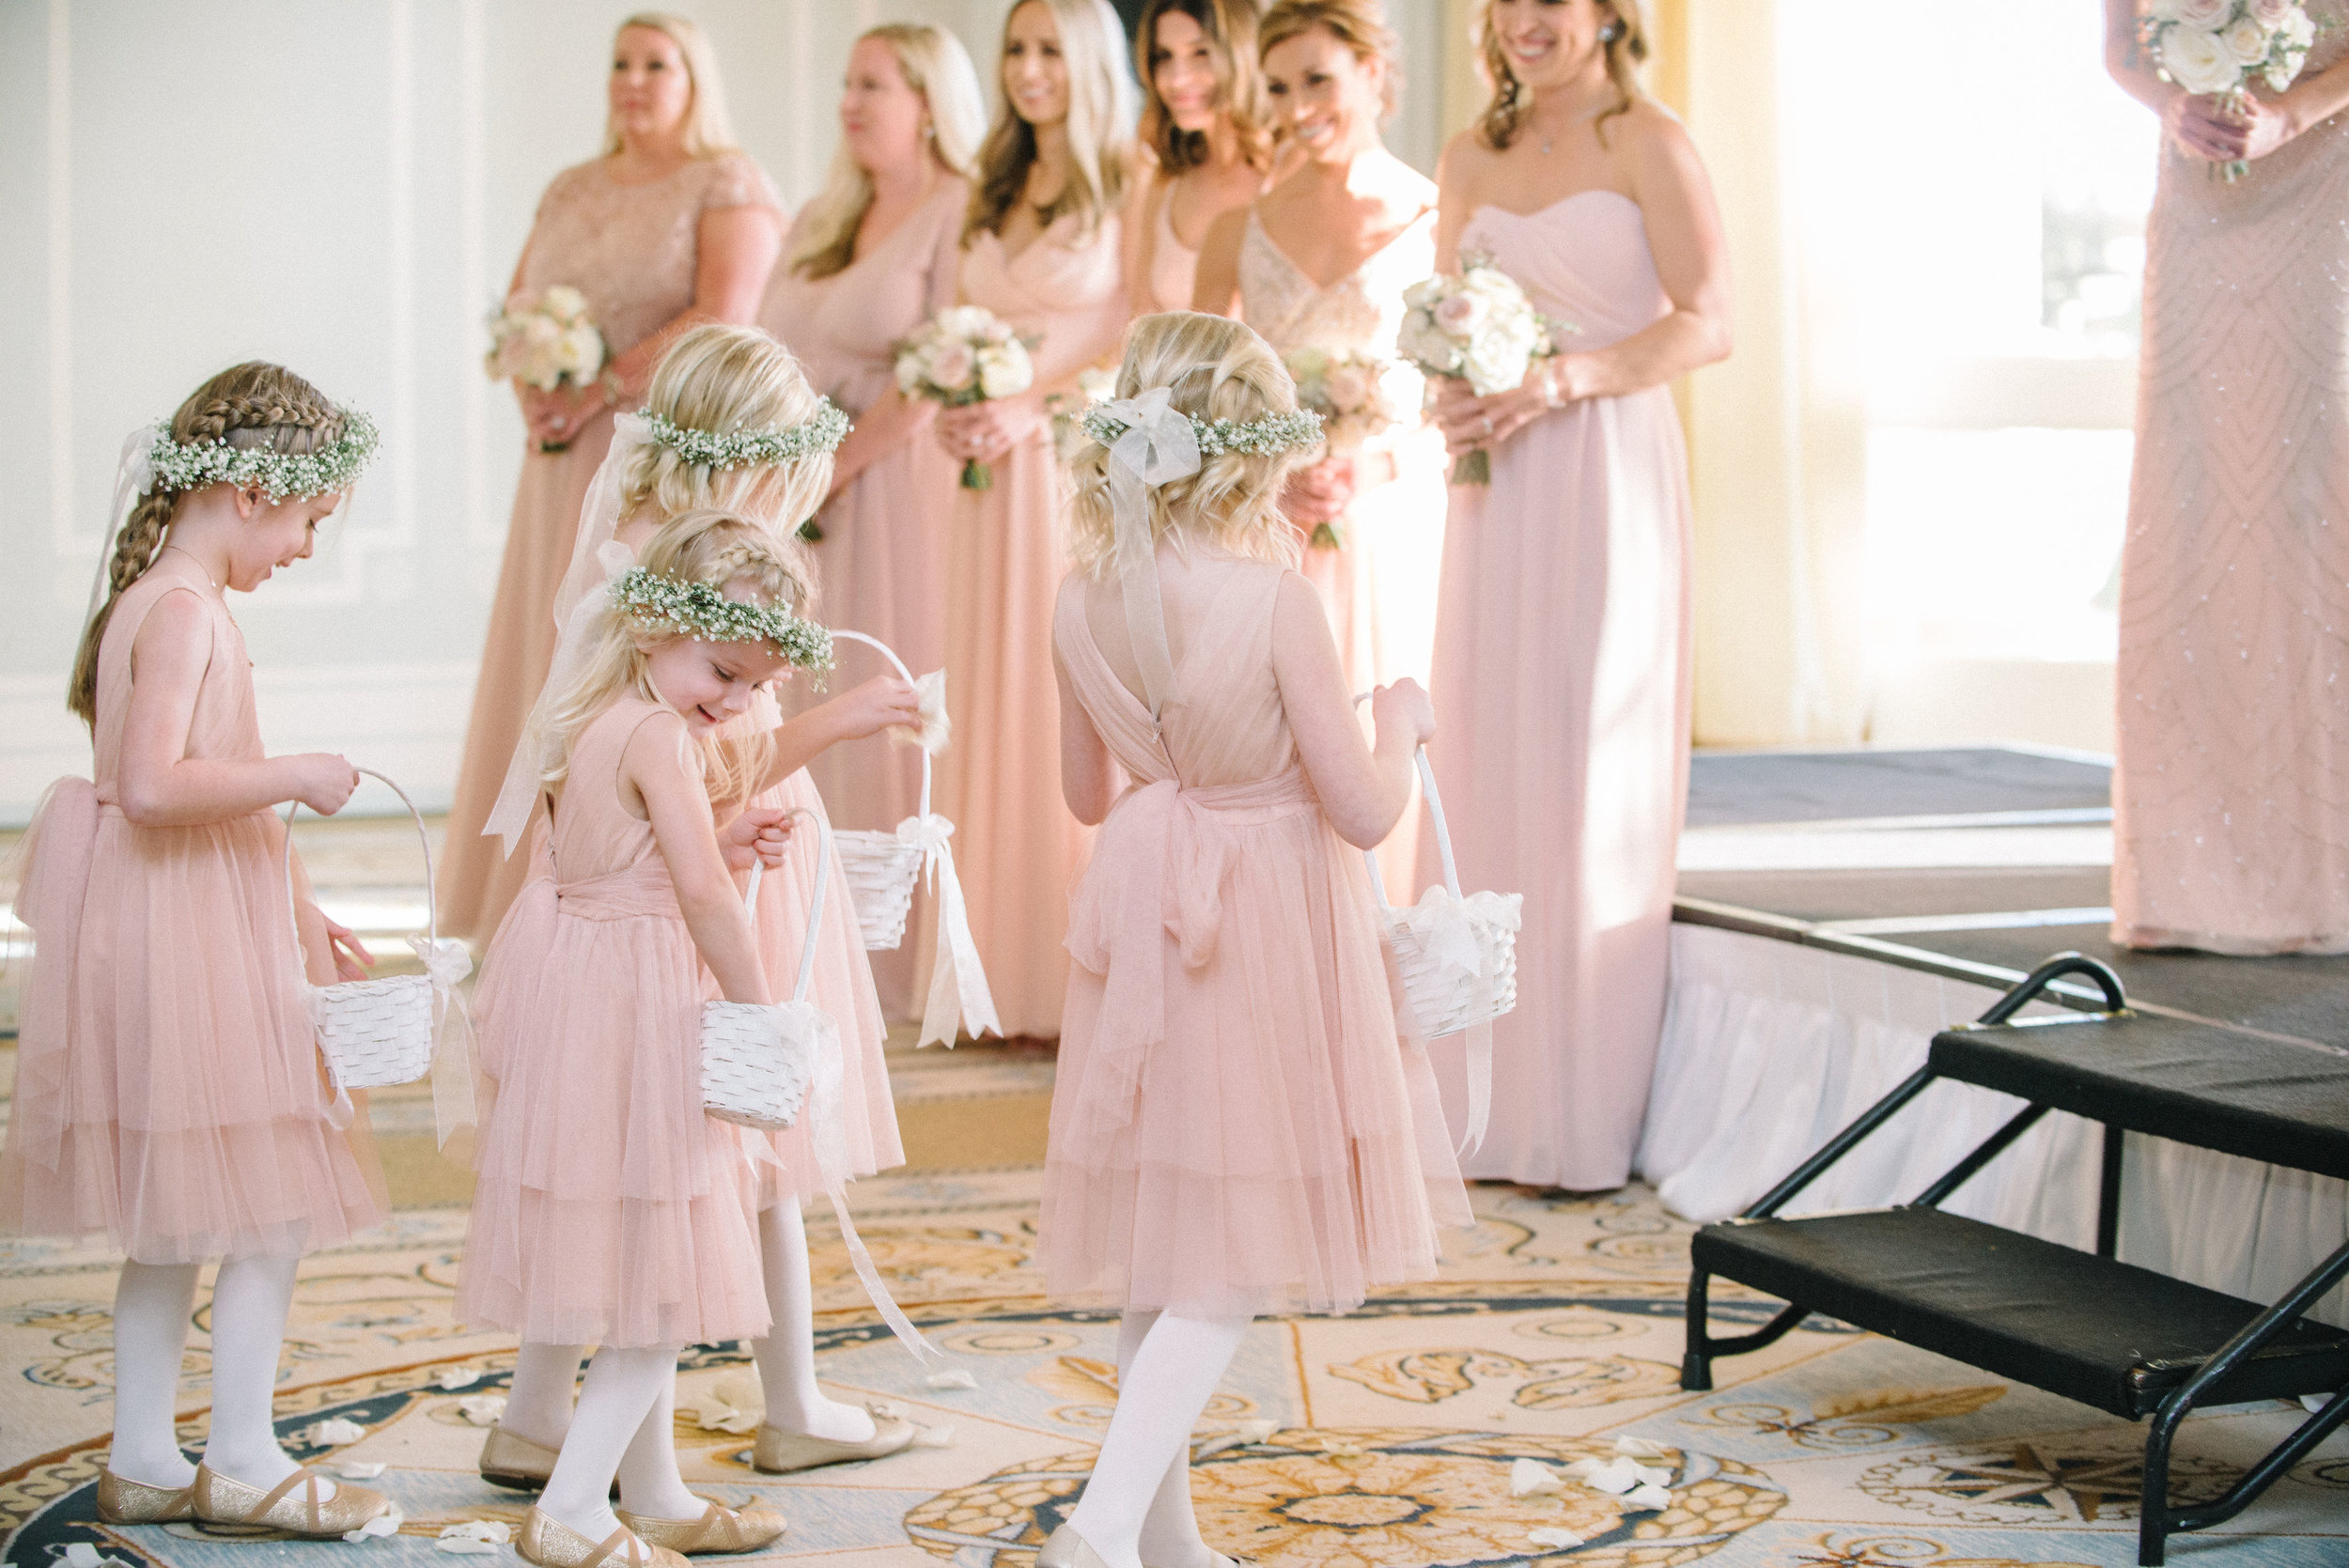 Blush bridesmaids and flower girls for Santa Monica destination wedding